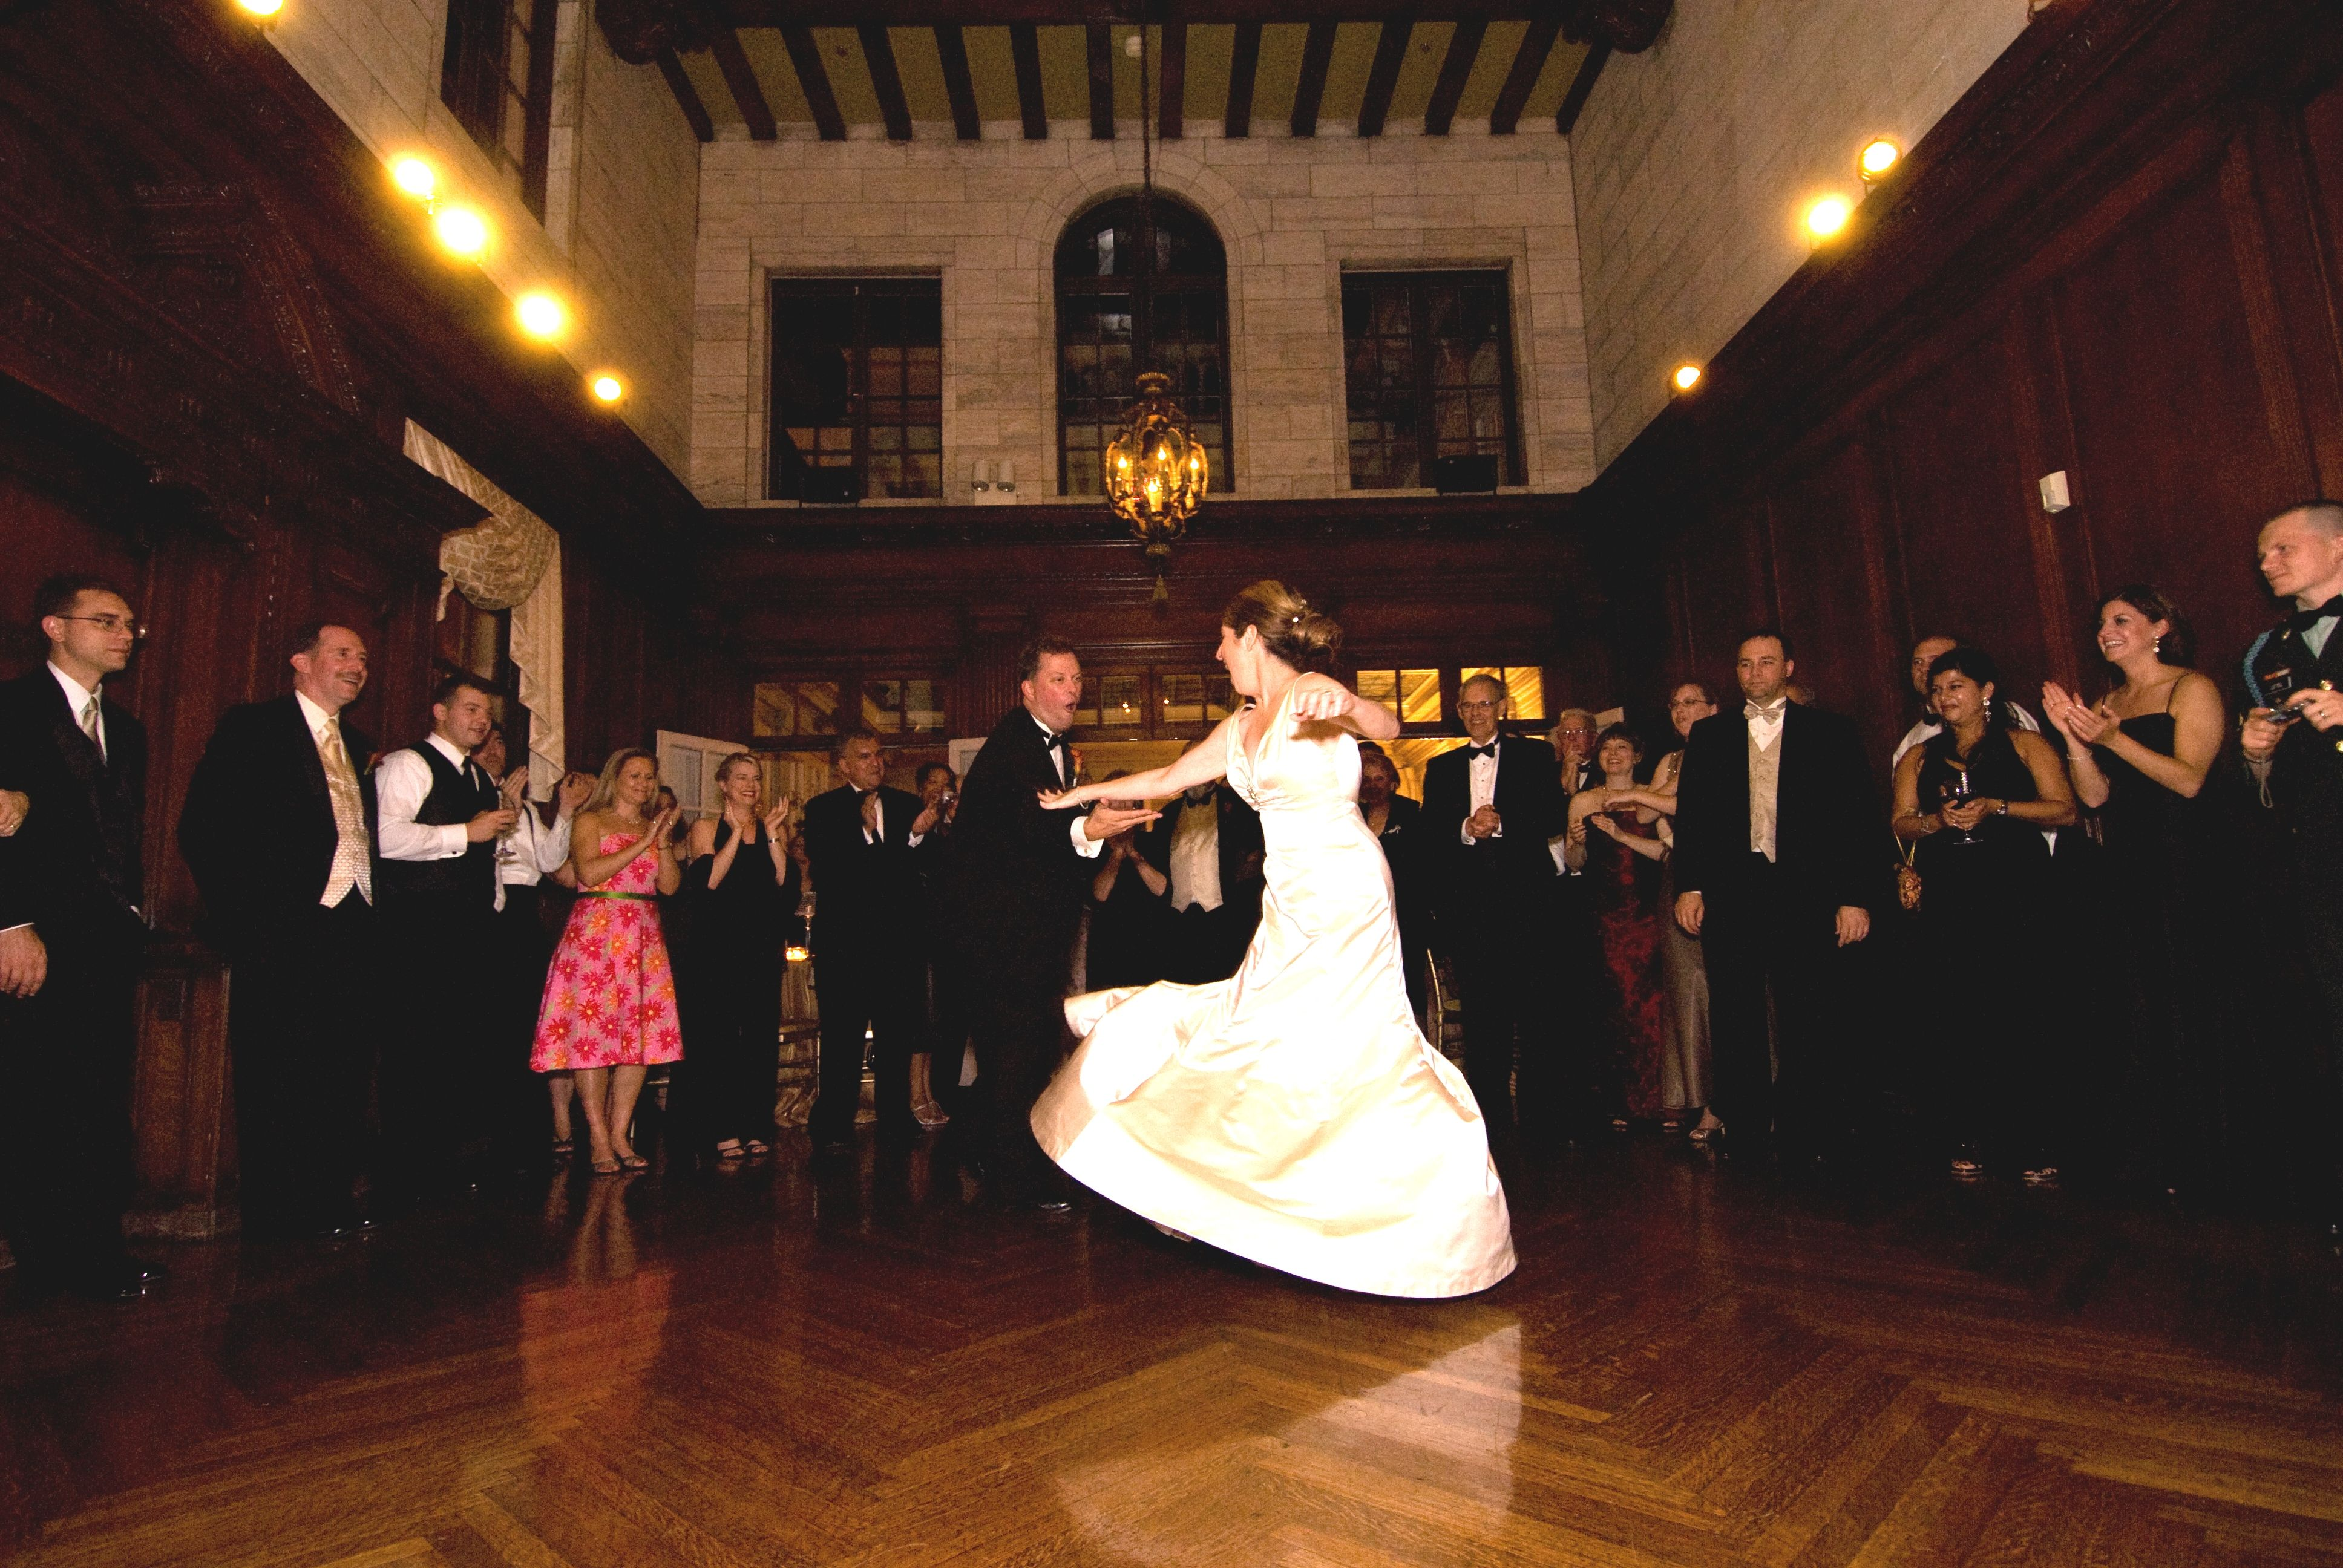 Dancing In The Music Room Of Mansion At Strathmore With Their Friends And Family